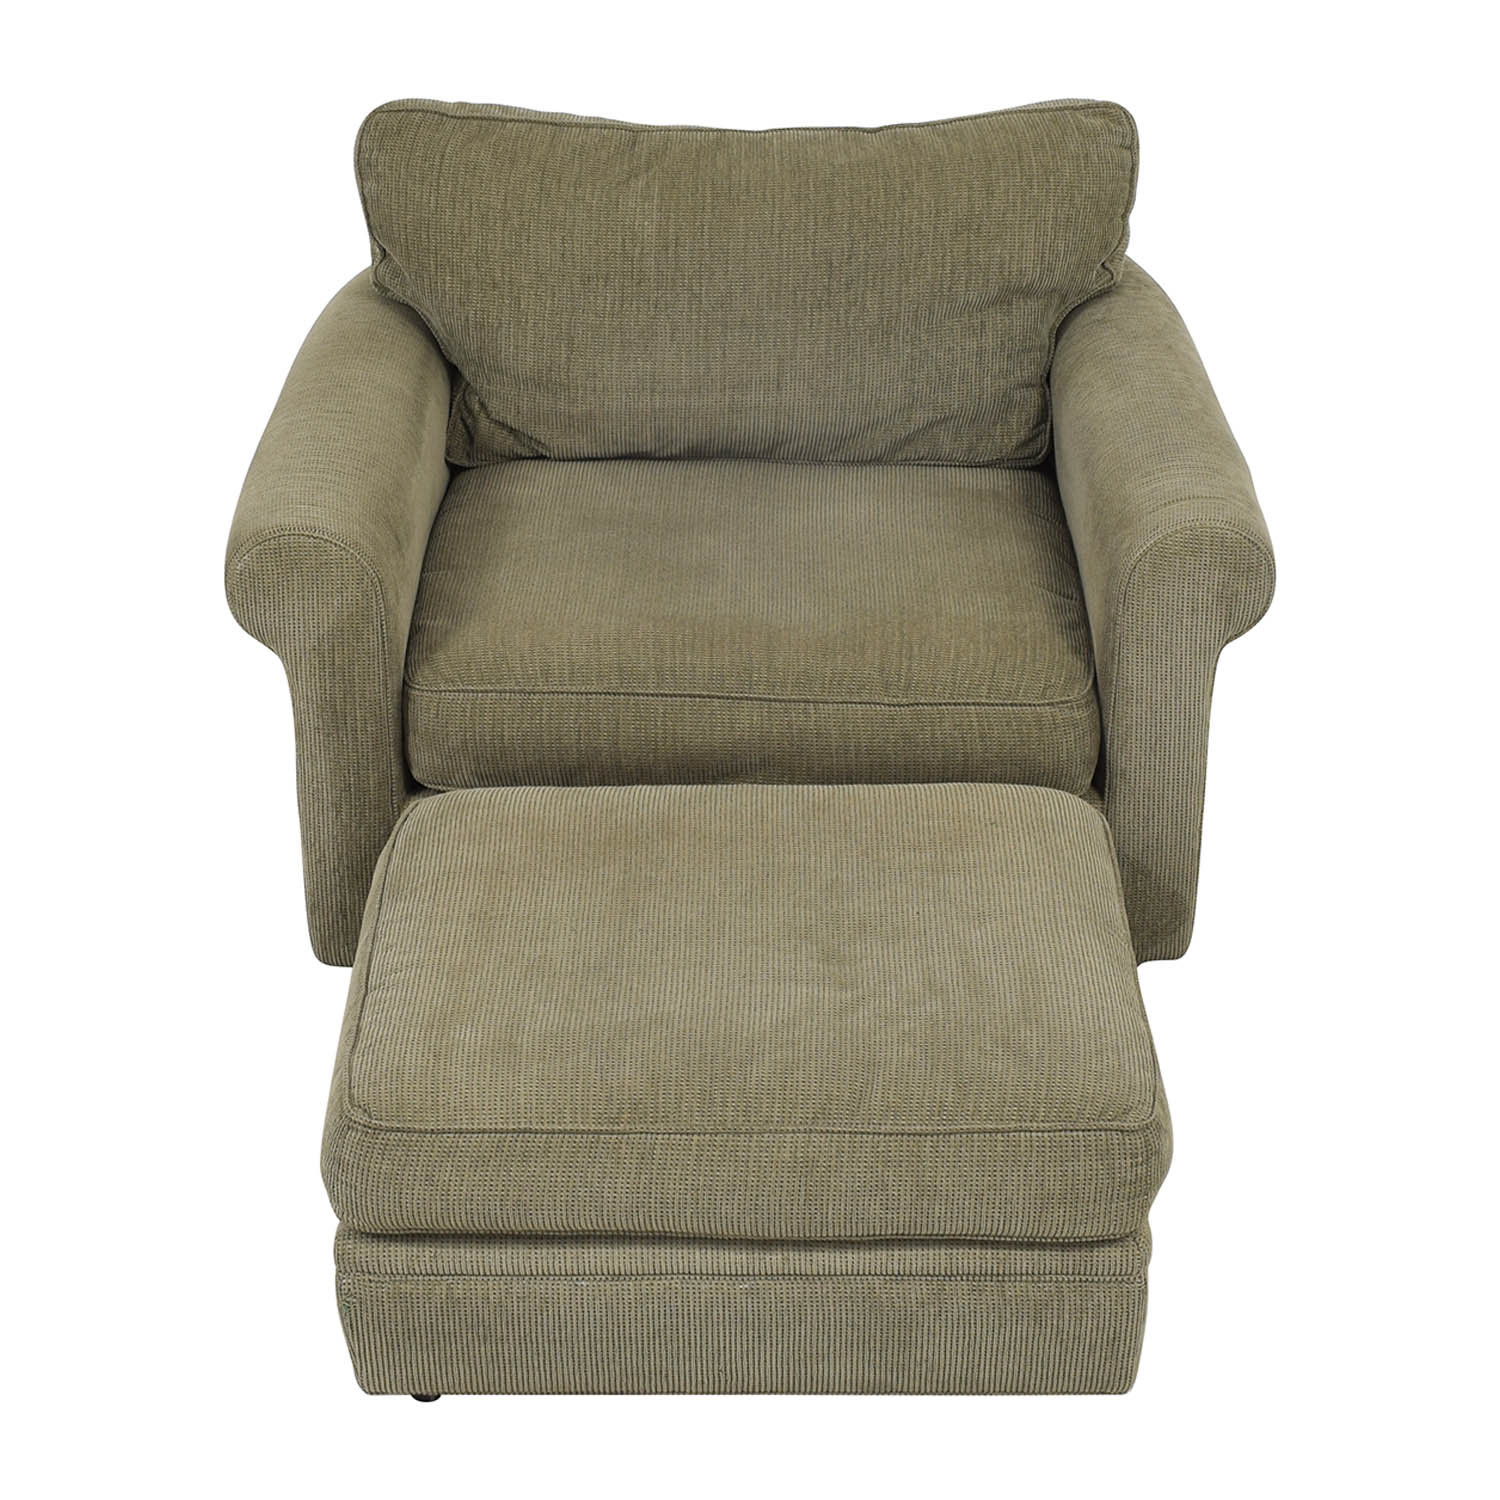 Crate & Barrel Crate & Barrel Upholstered Chair with Ottoman price